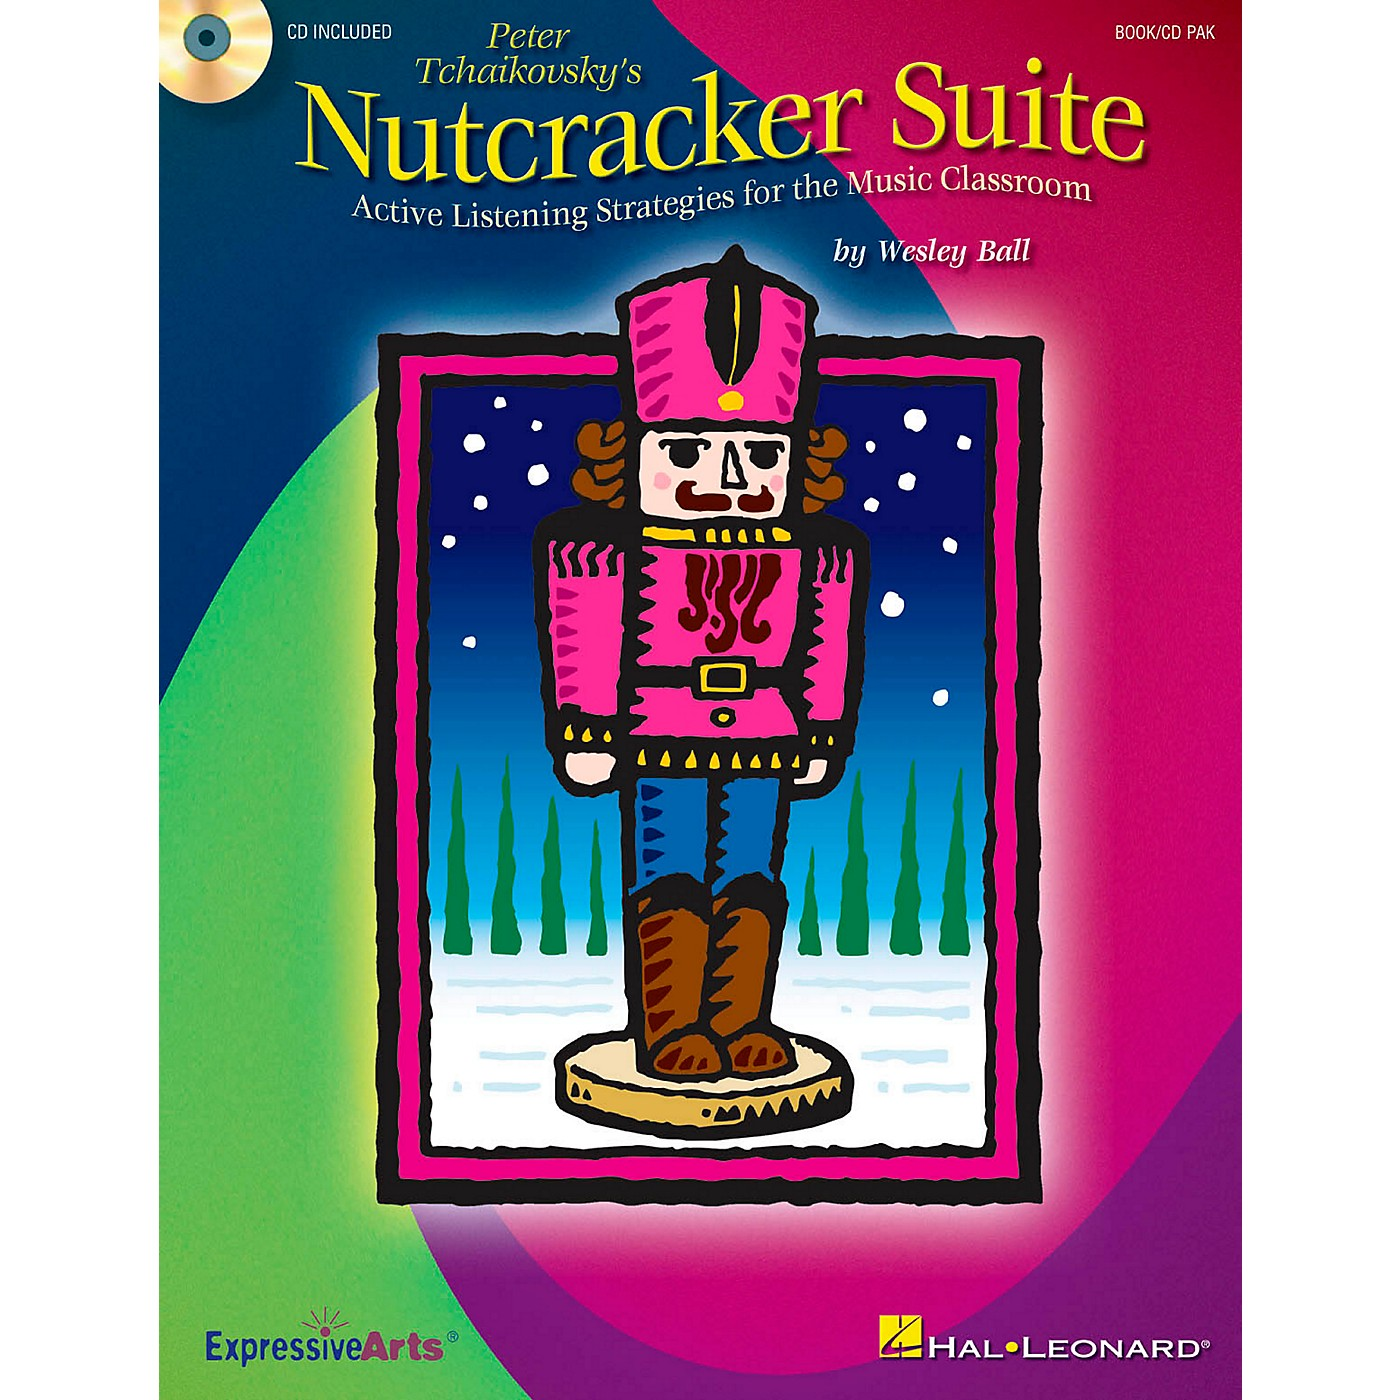 Hal Leonard Nutcracker Suite - Active Listening Strategies for the Music Classroom - Classroom Kit thumbnail